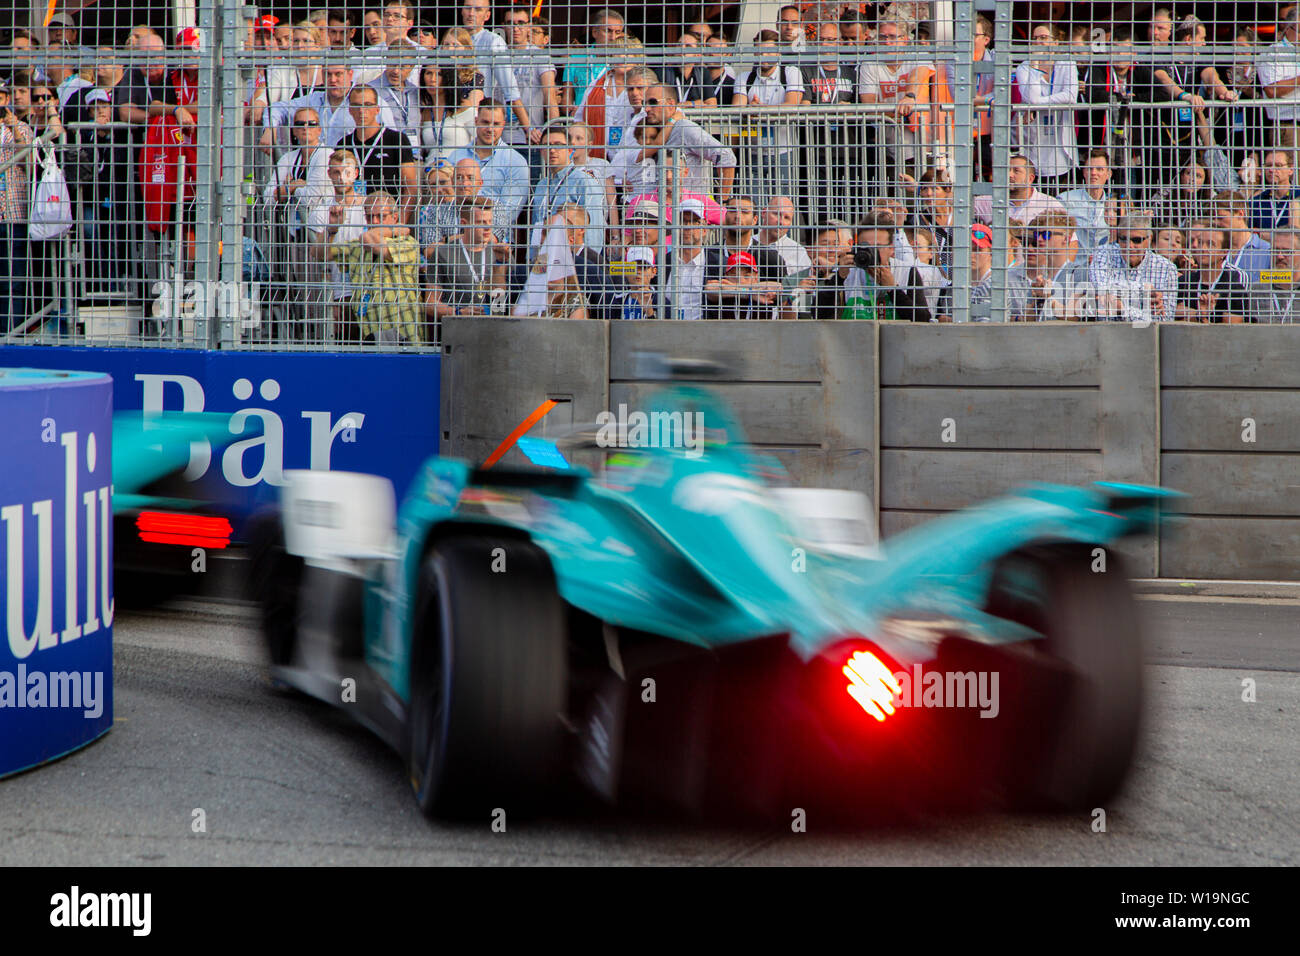 Tom Dillmann racing the street track of the Julius Bär Formula E race in the swiss capital Bern. Due to a car pile up before turn 1, the race was red flagged and restarted with the original grid position. The decision to use the original grid position was protested by several of the drivers who lost positions they had gained. Stock Photo